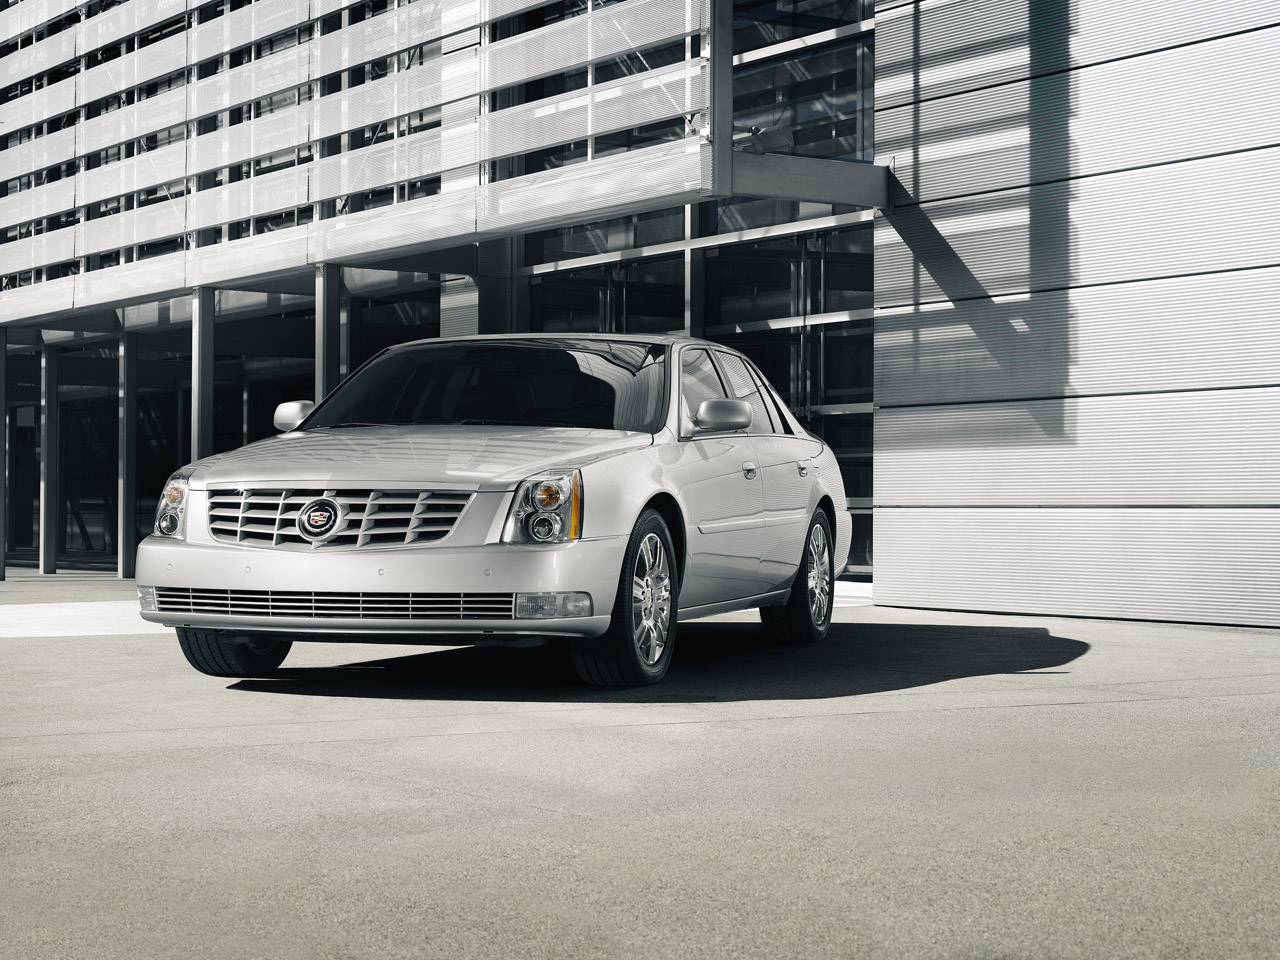 2011 cadillac dts 001 2011 Cadillac DTS   Features, Photos, Price